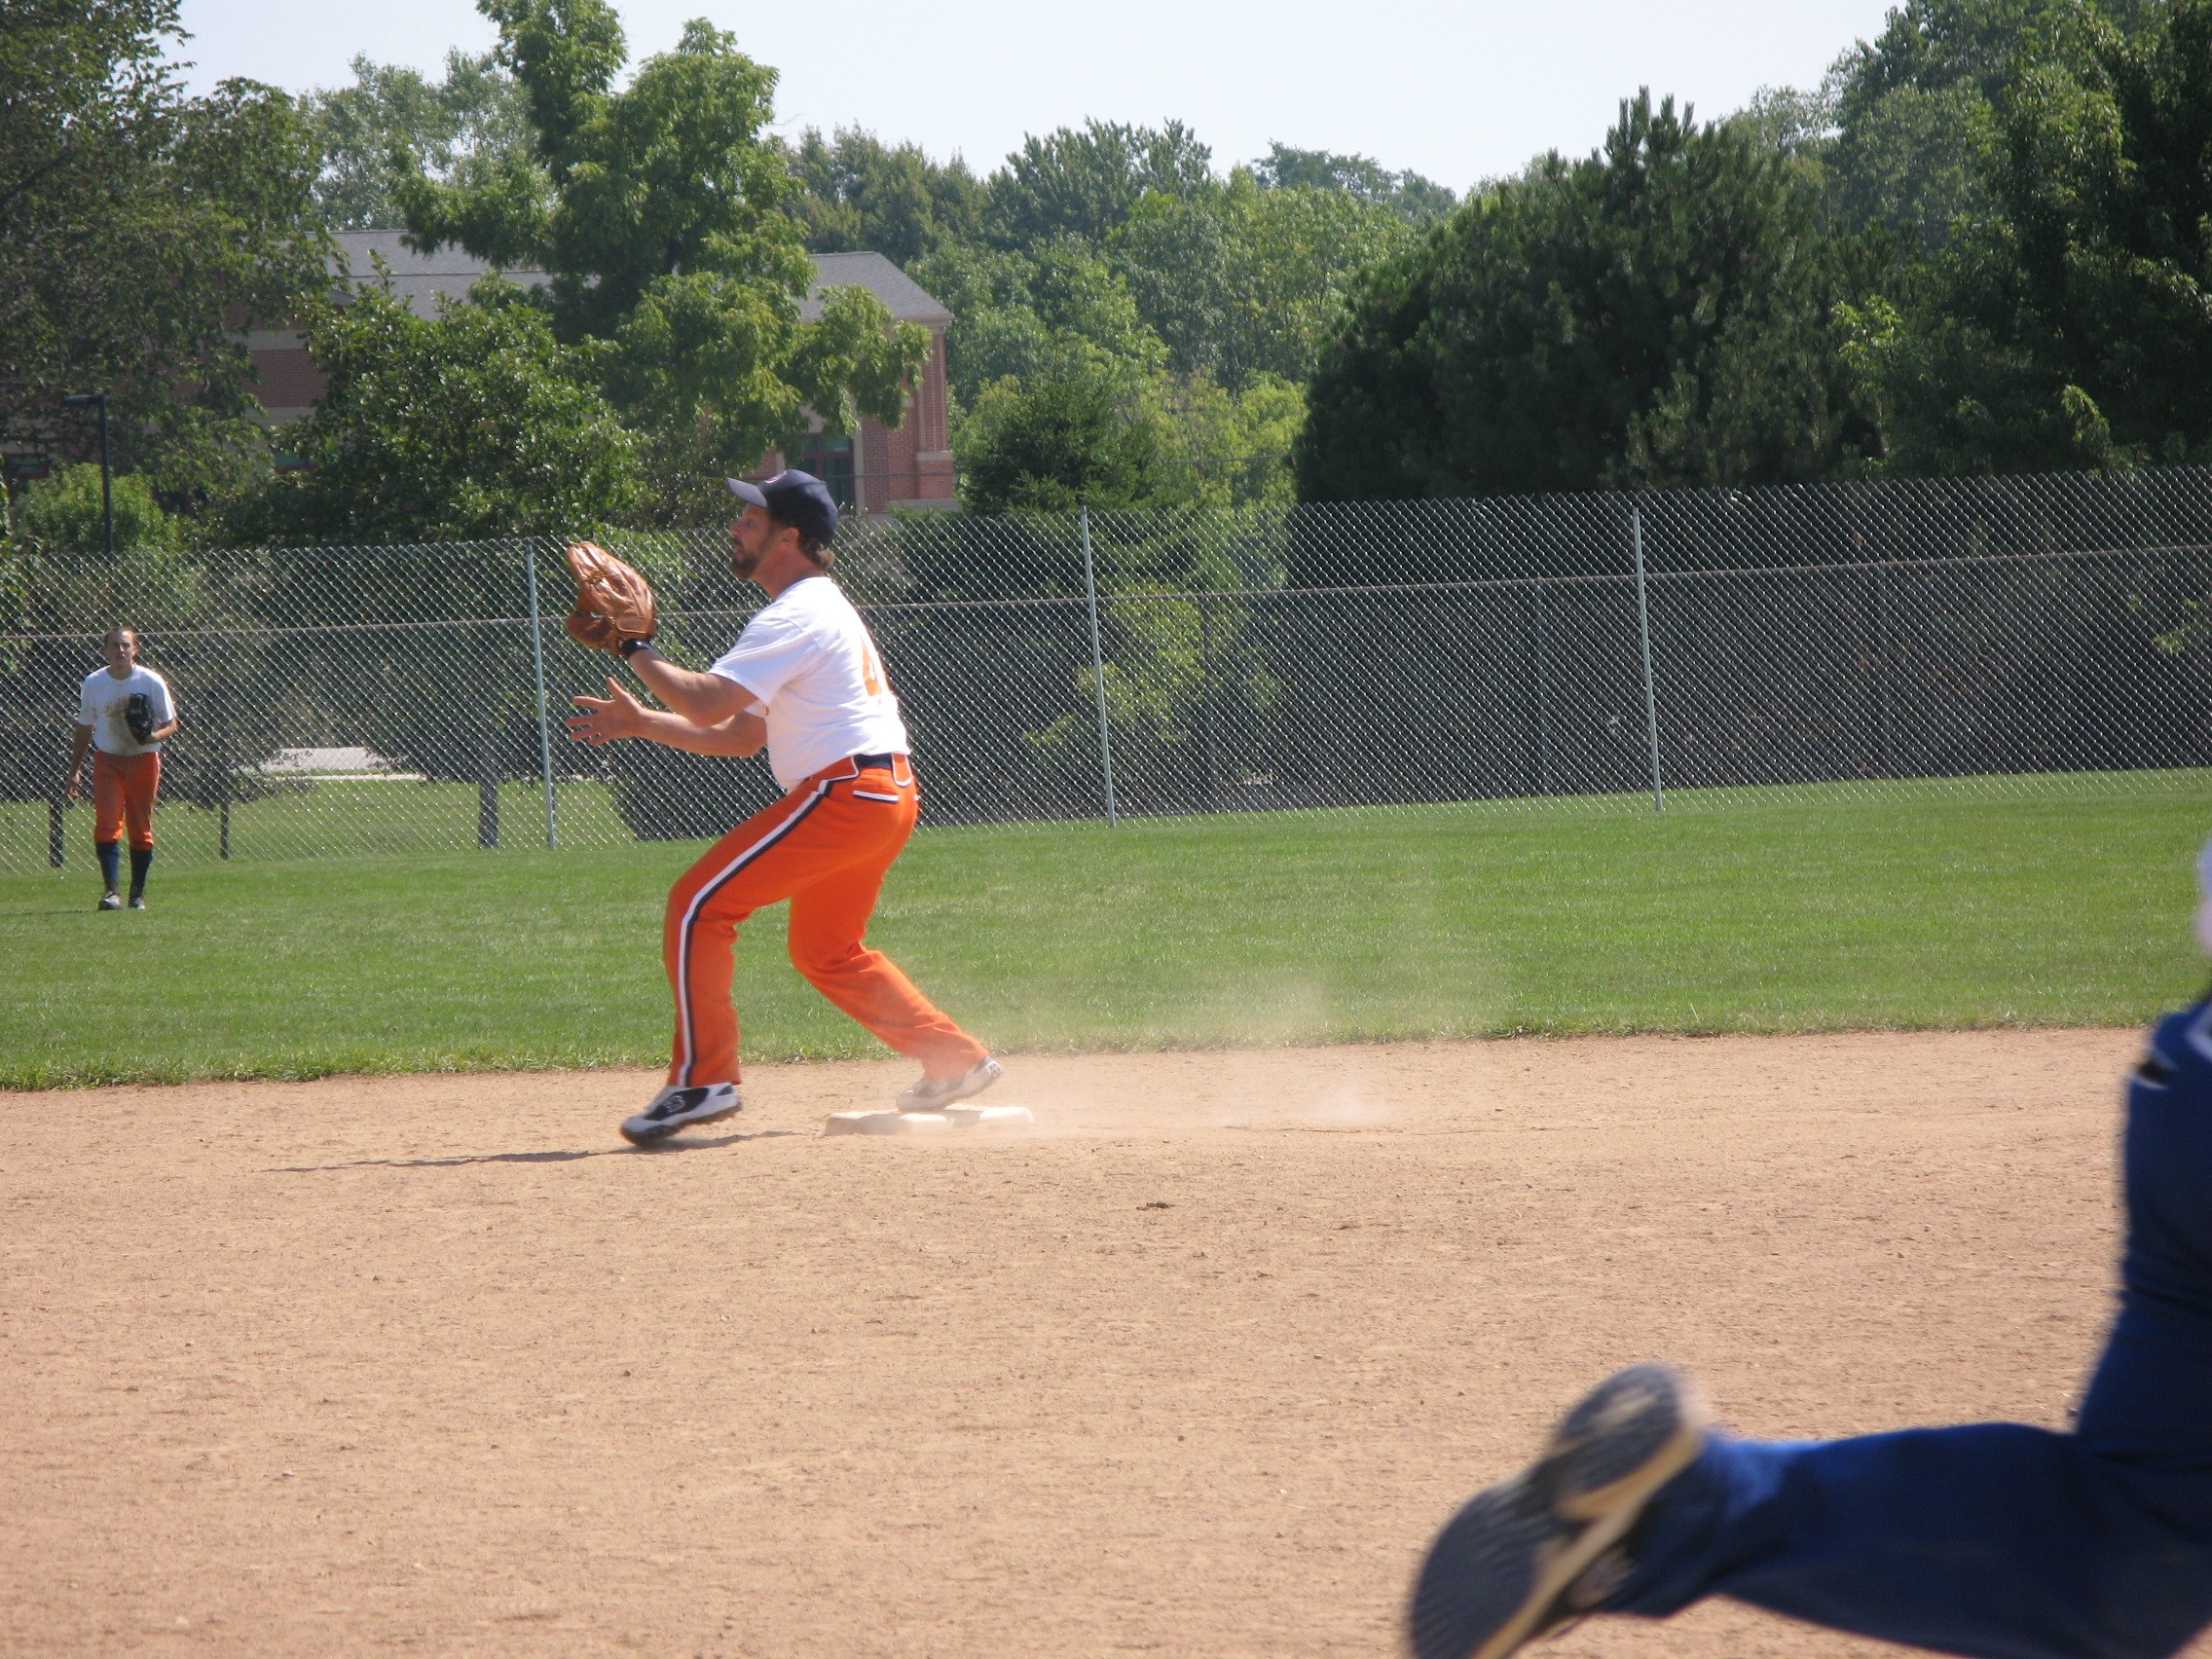 Dale rolls a double play. Nice!